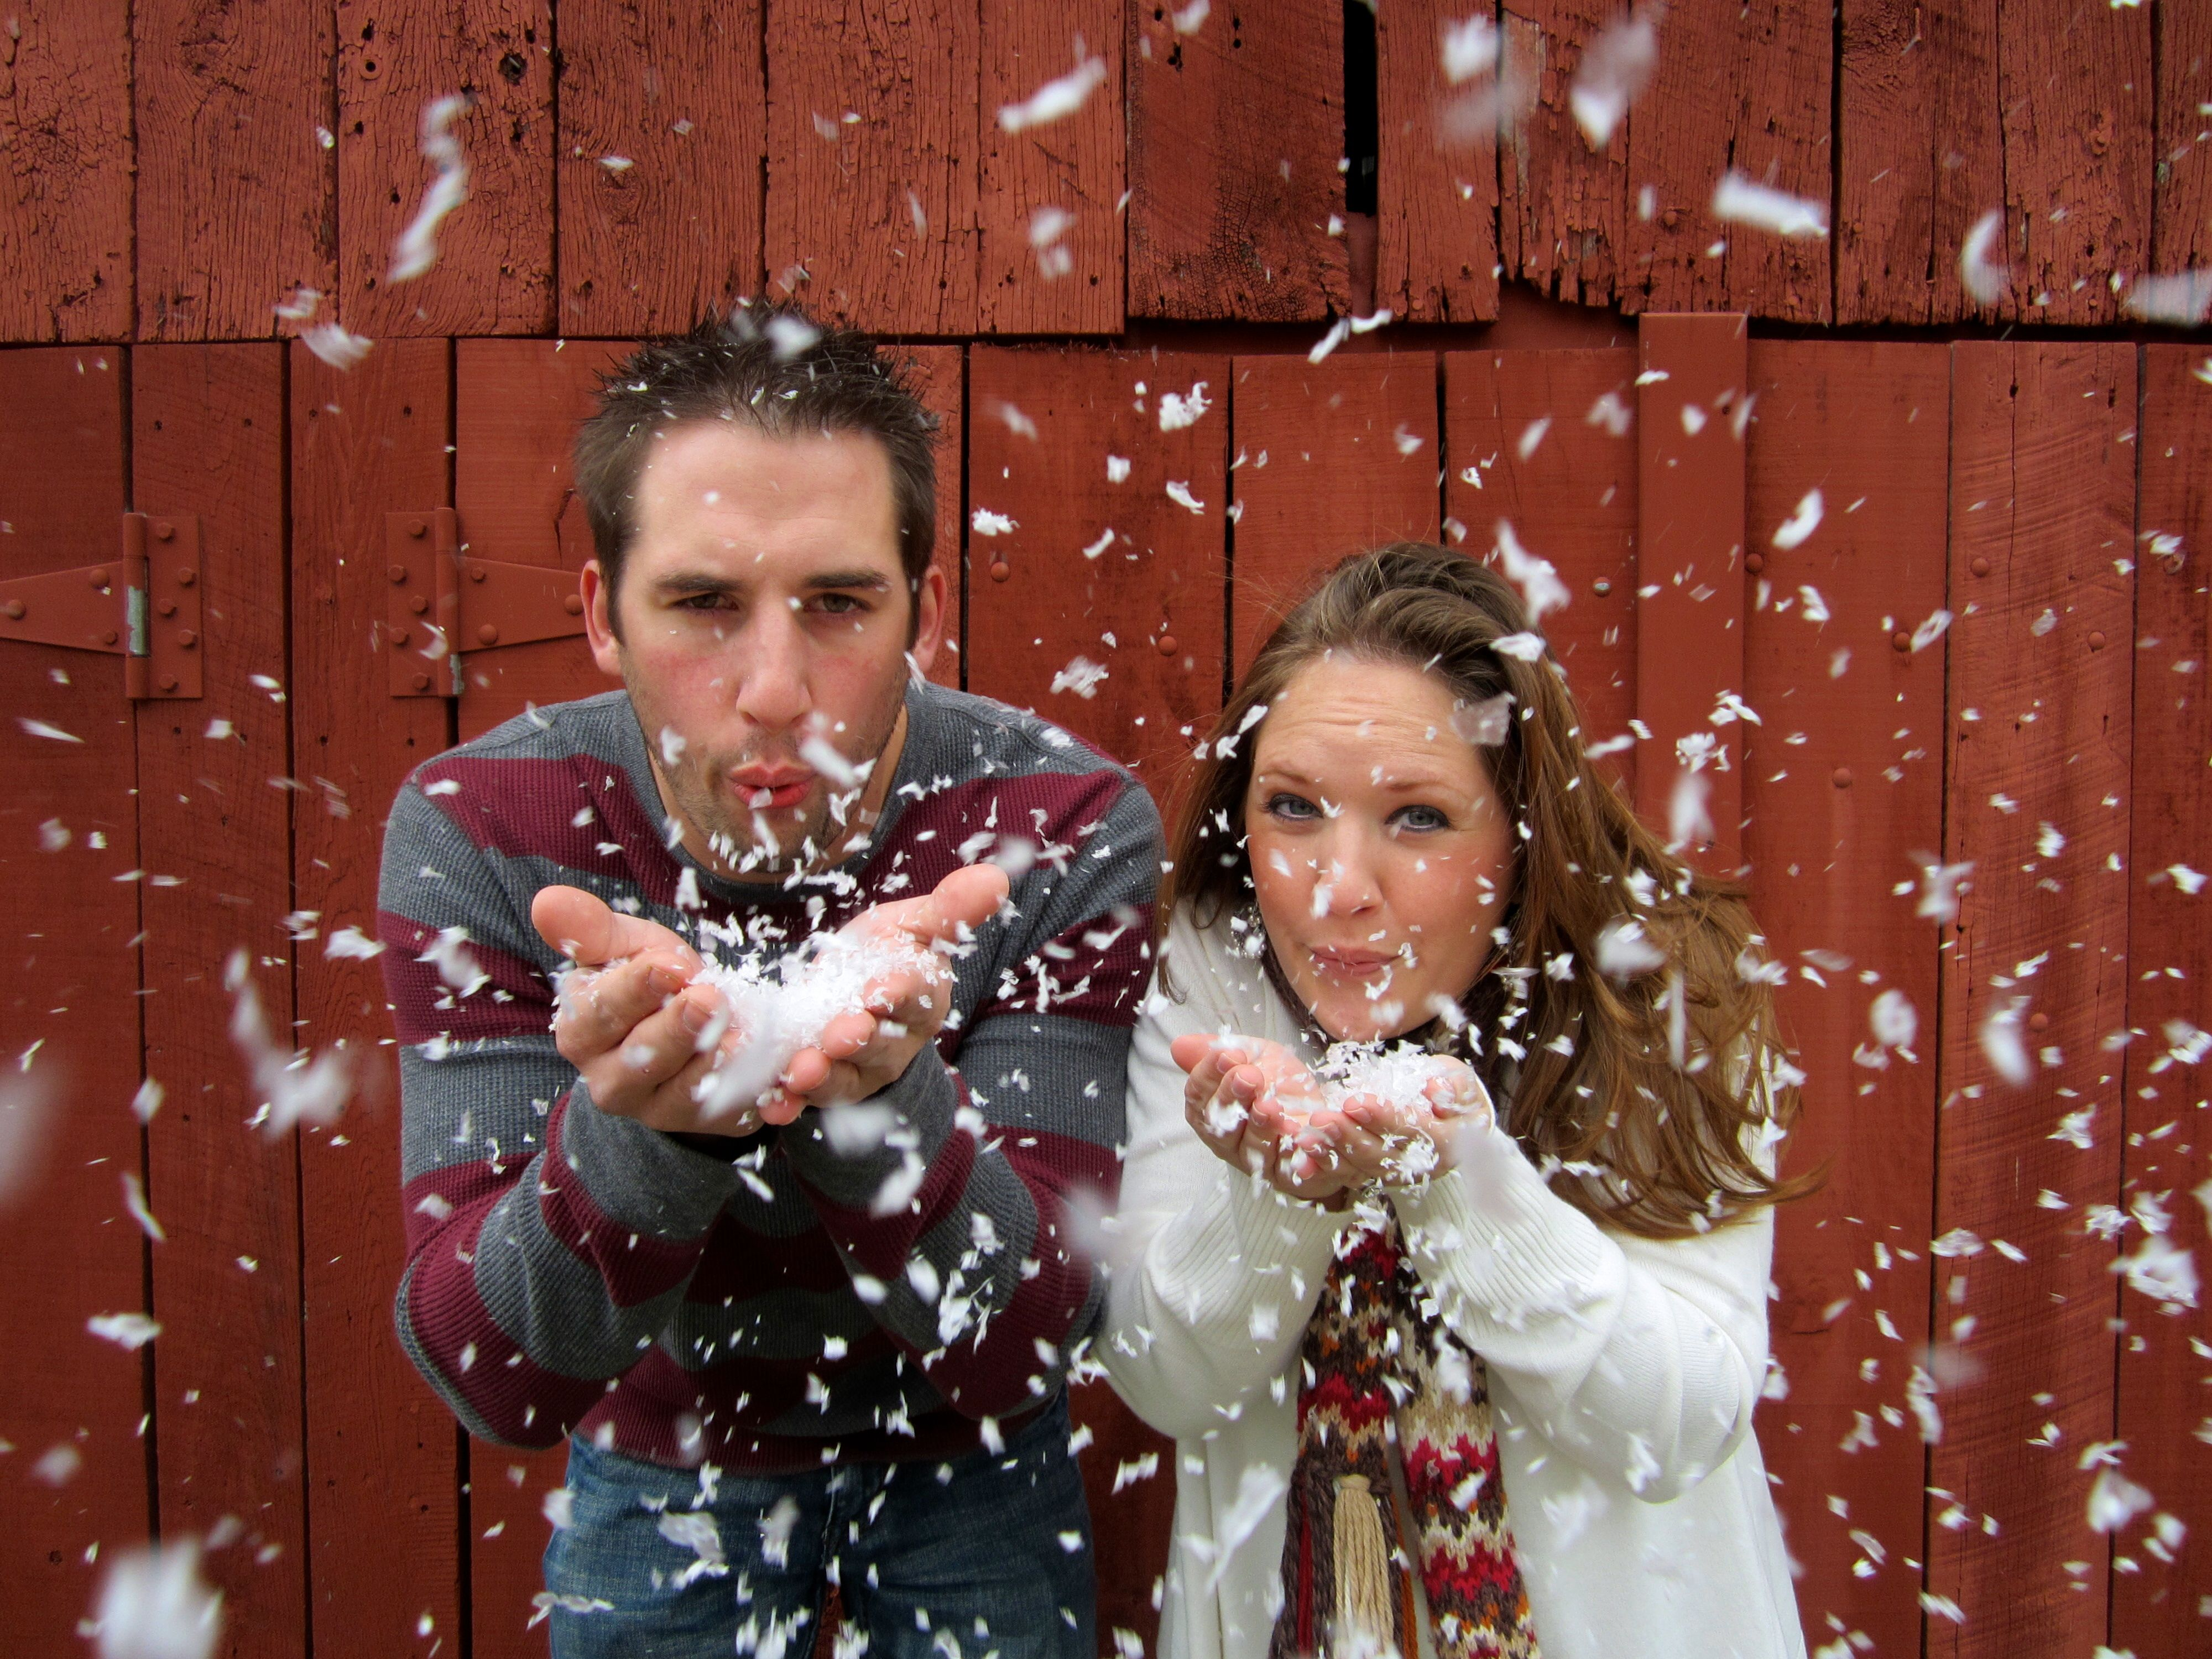 Christmas Card Picture Idea Just A Bag Of Fake Snow